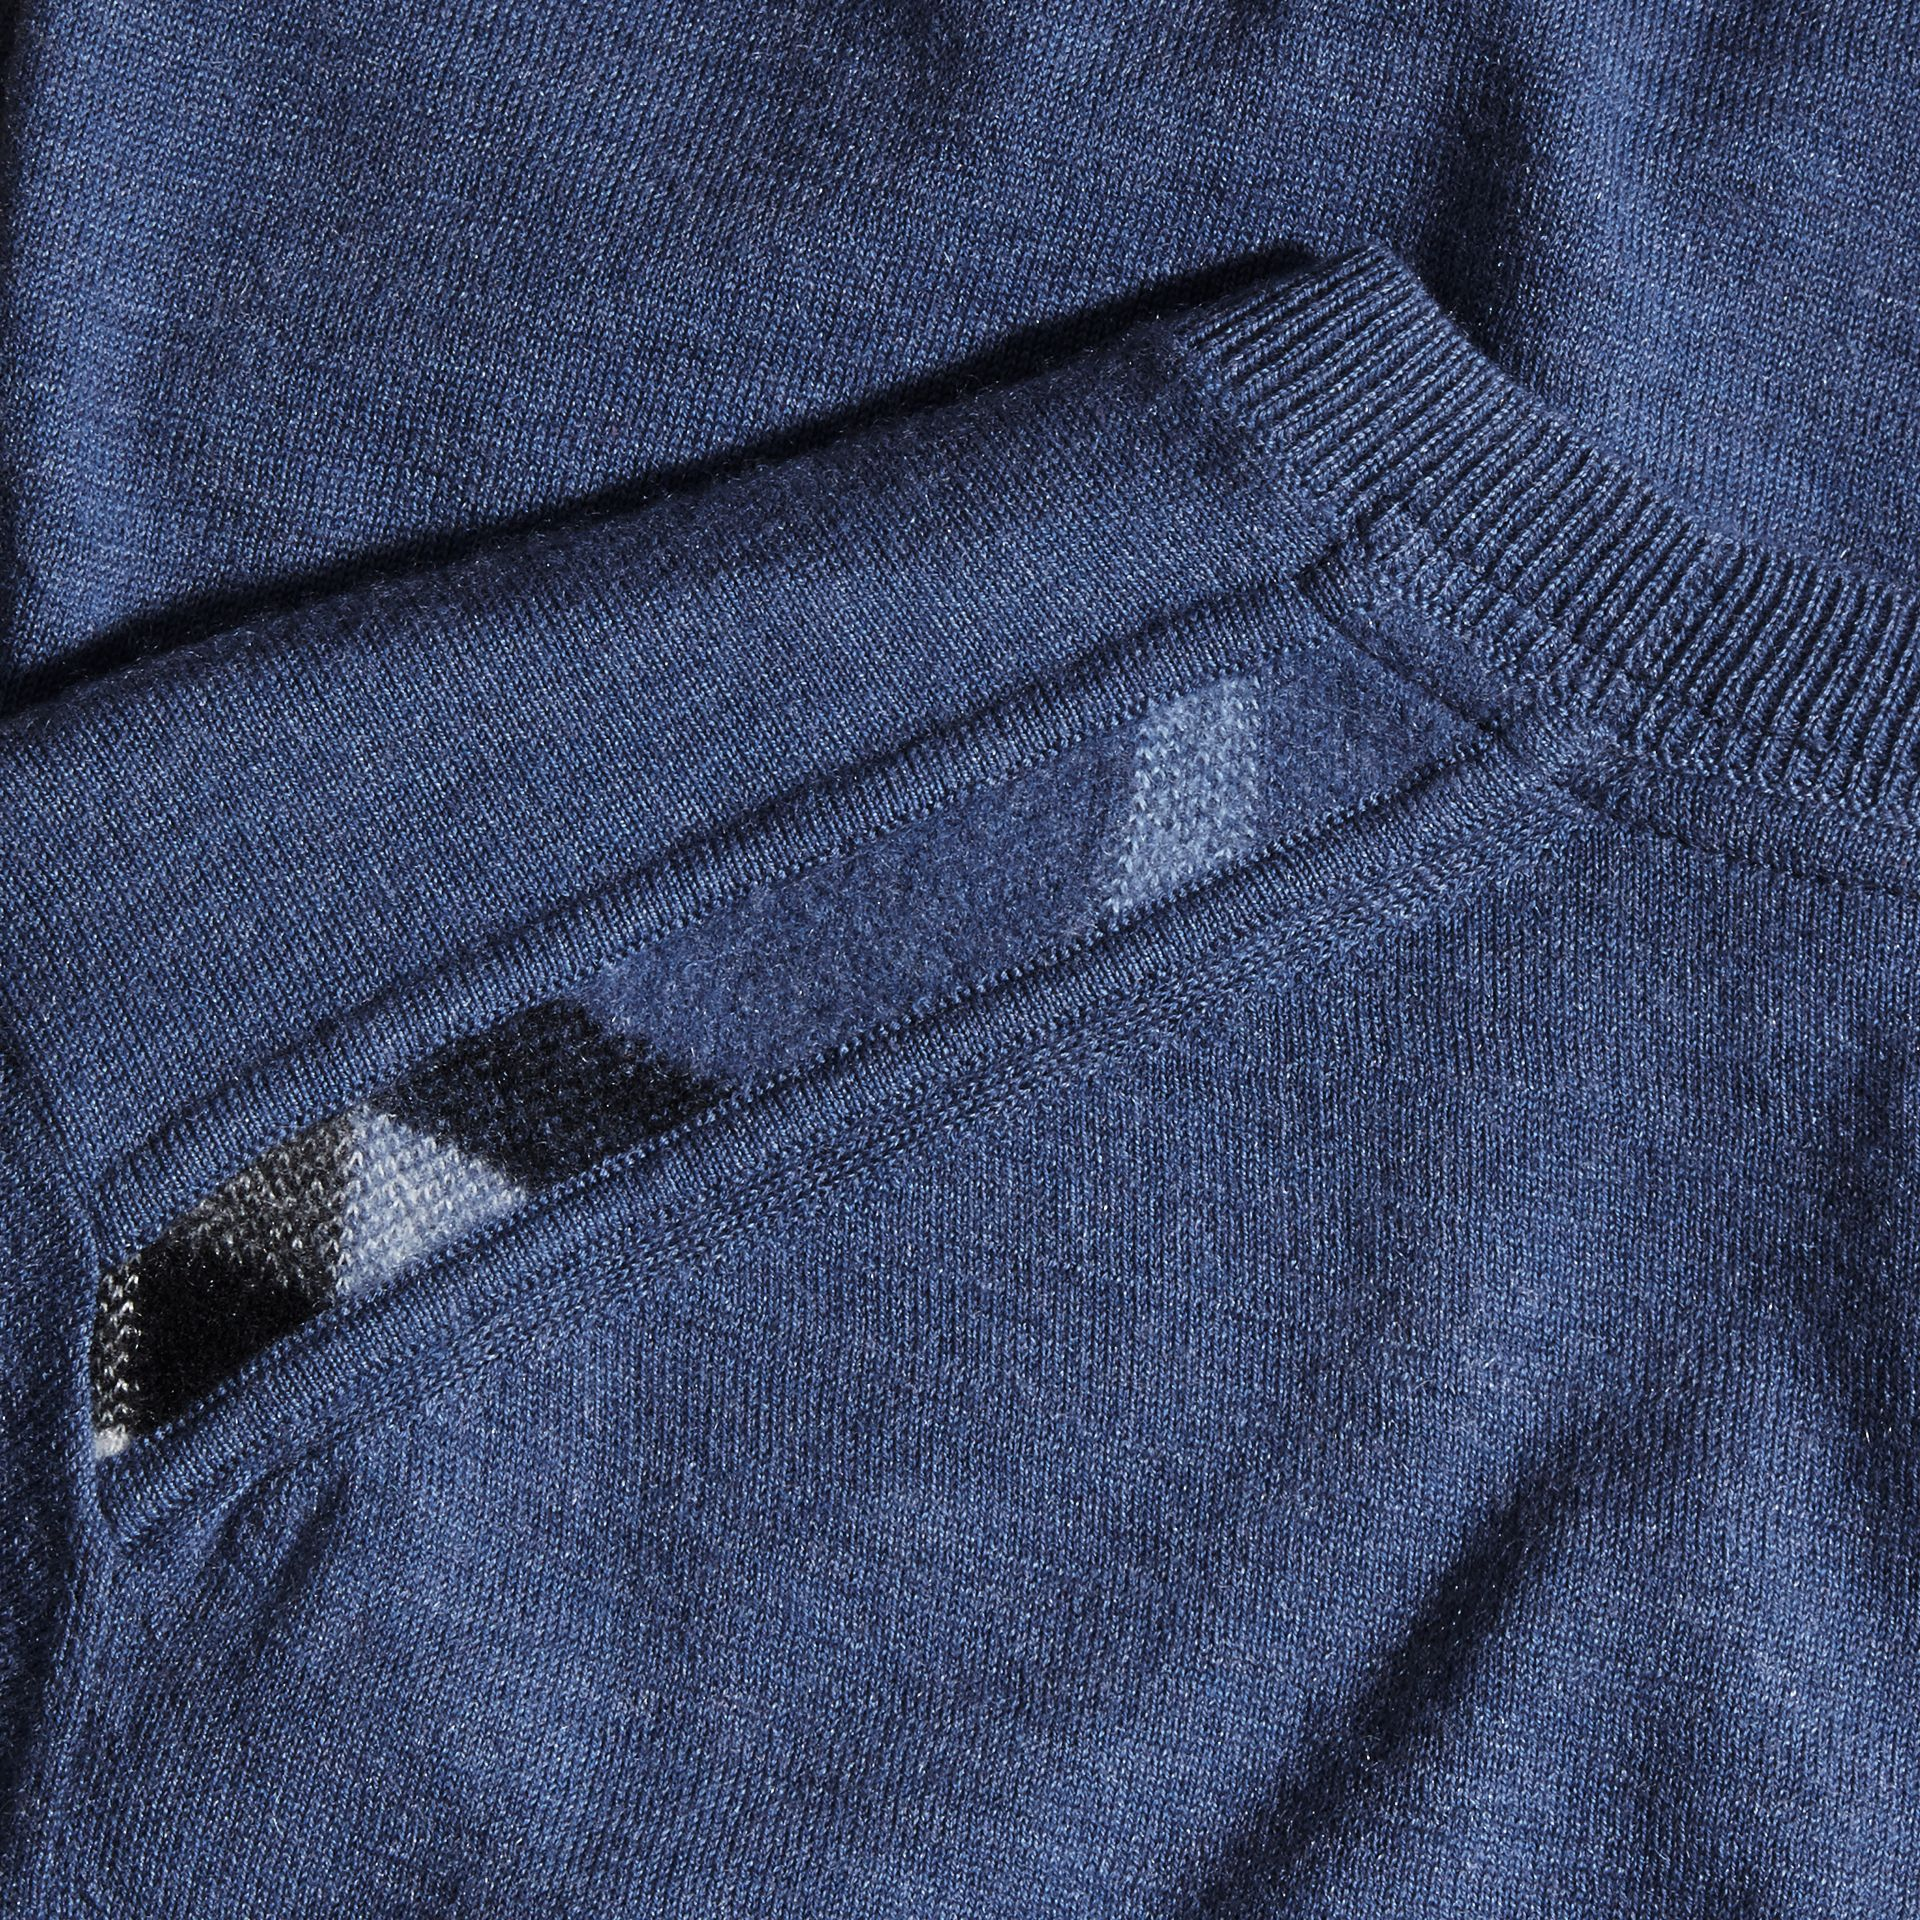 Check Jacquard Detail Cashmere Sweater in Dusty Blue - Men | Burberry Canada - gallery image 2